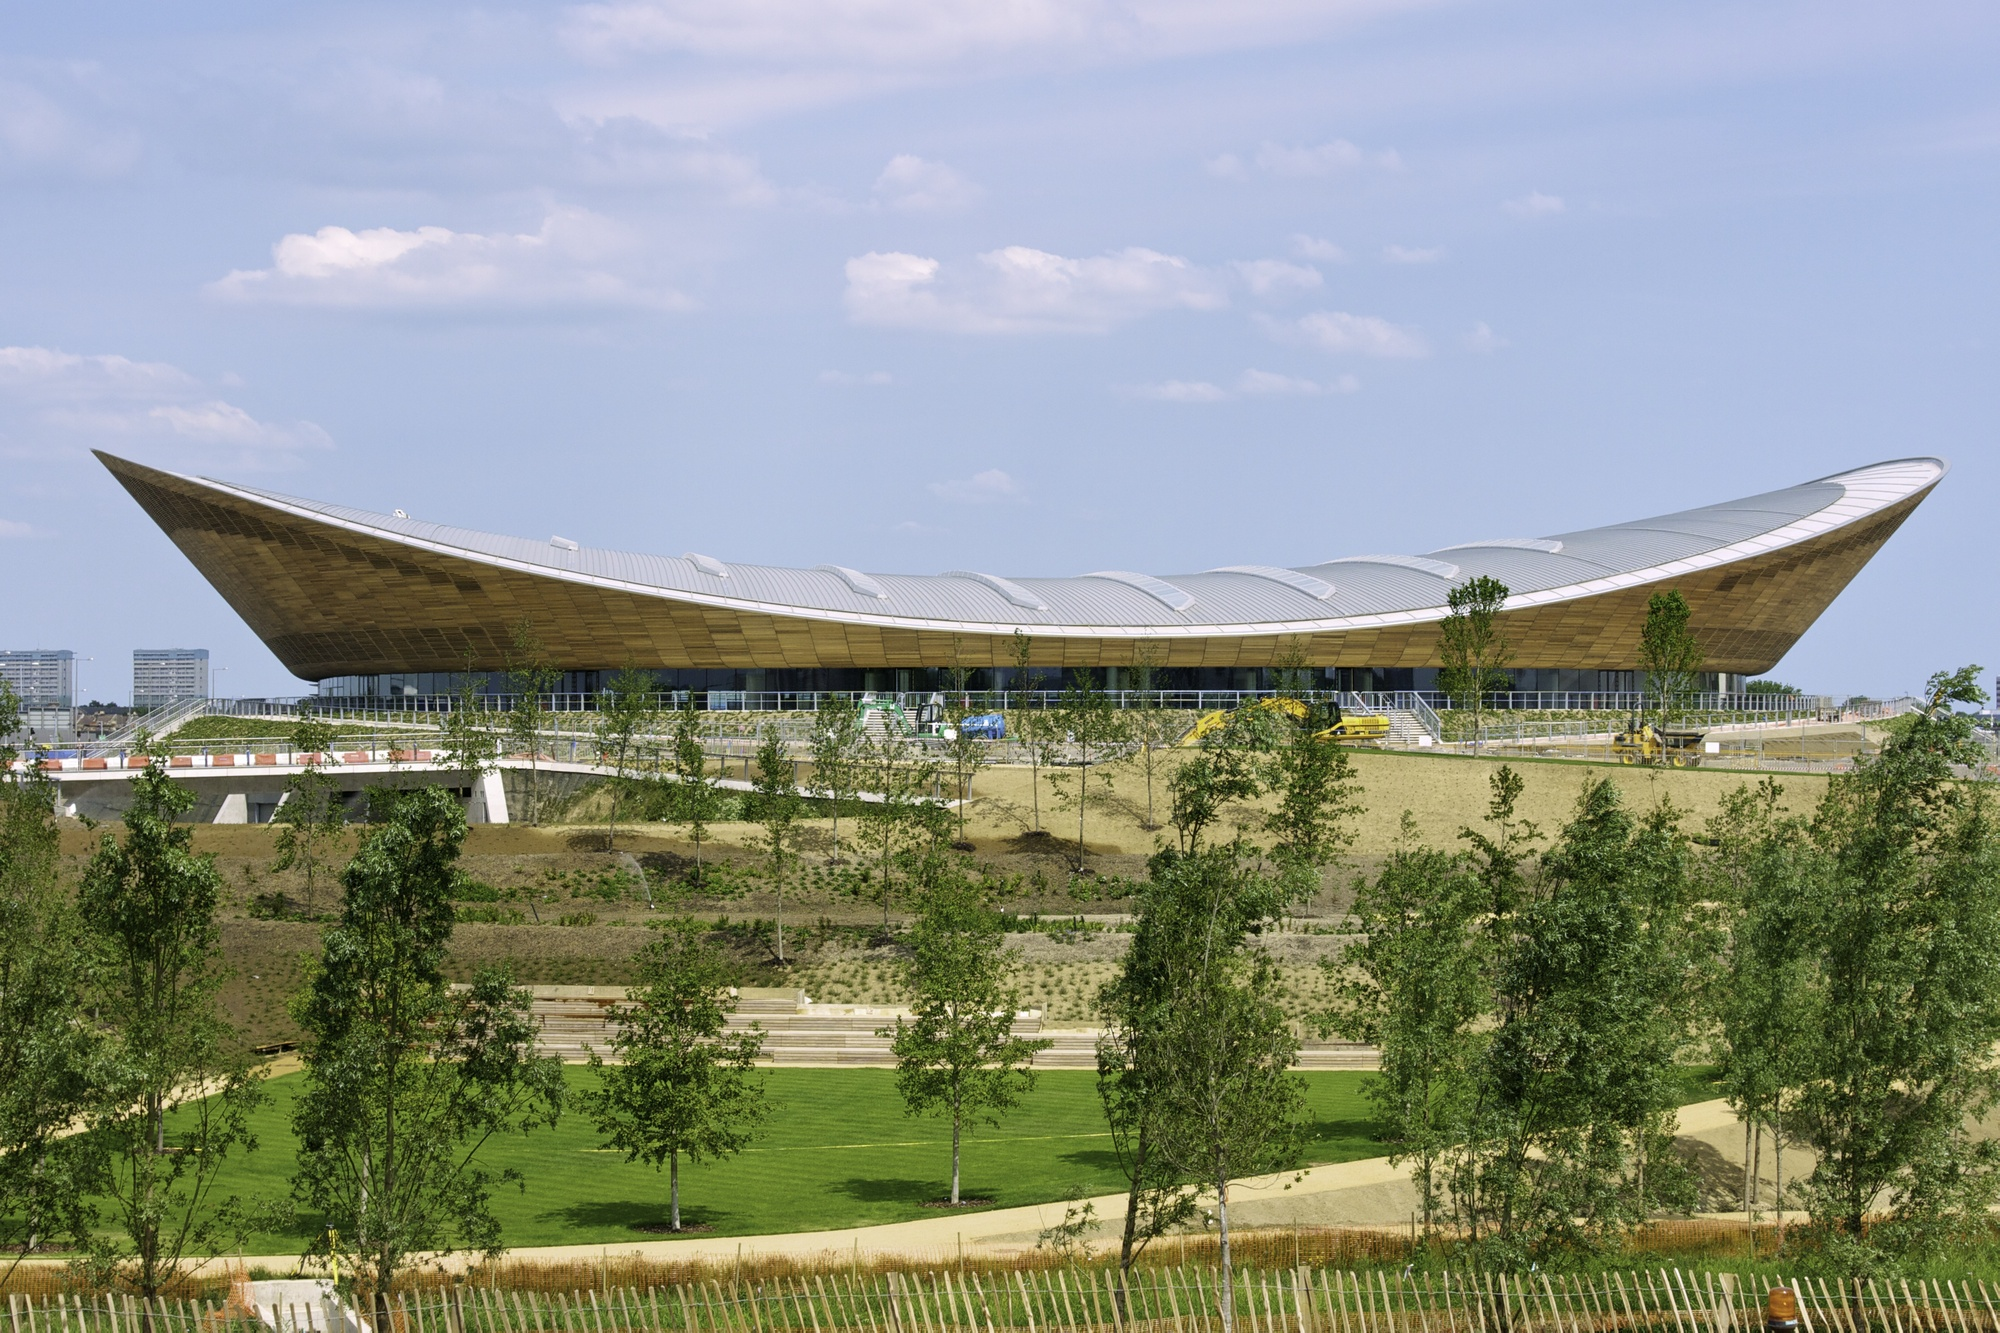 Velódromo de Londres 2012 / Hopkins Architects, © Anthony Palmer